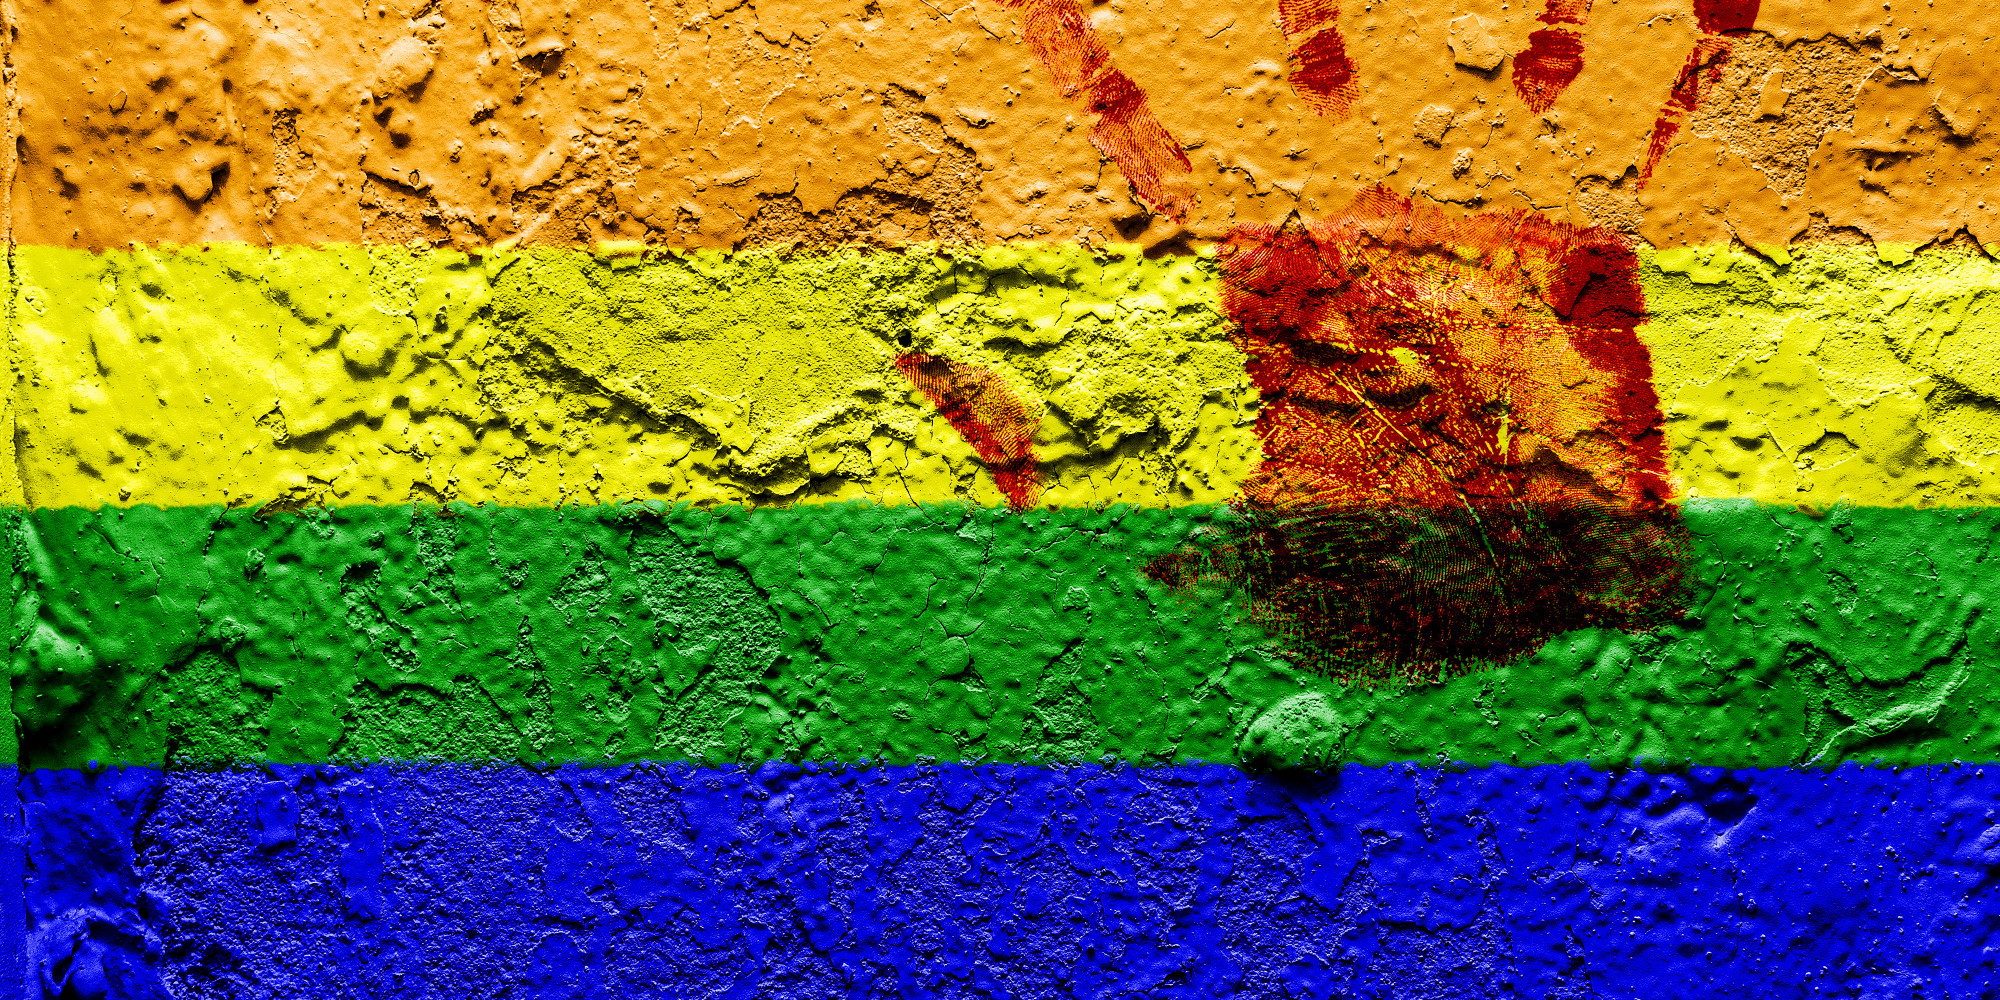 Wallpaper Chelsea 3d Android Lgbtq Youth Suicide Prevention Program Will Continue At